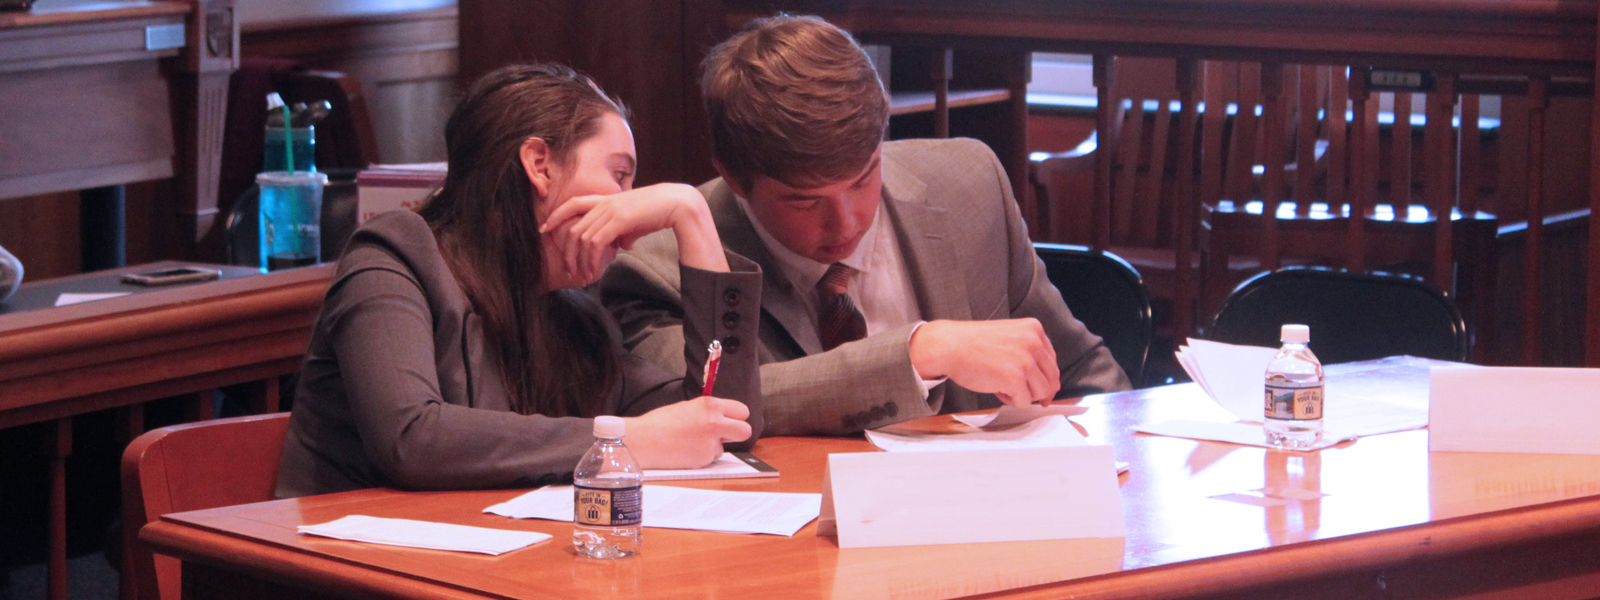 students in the courtroom